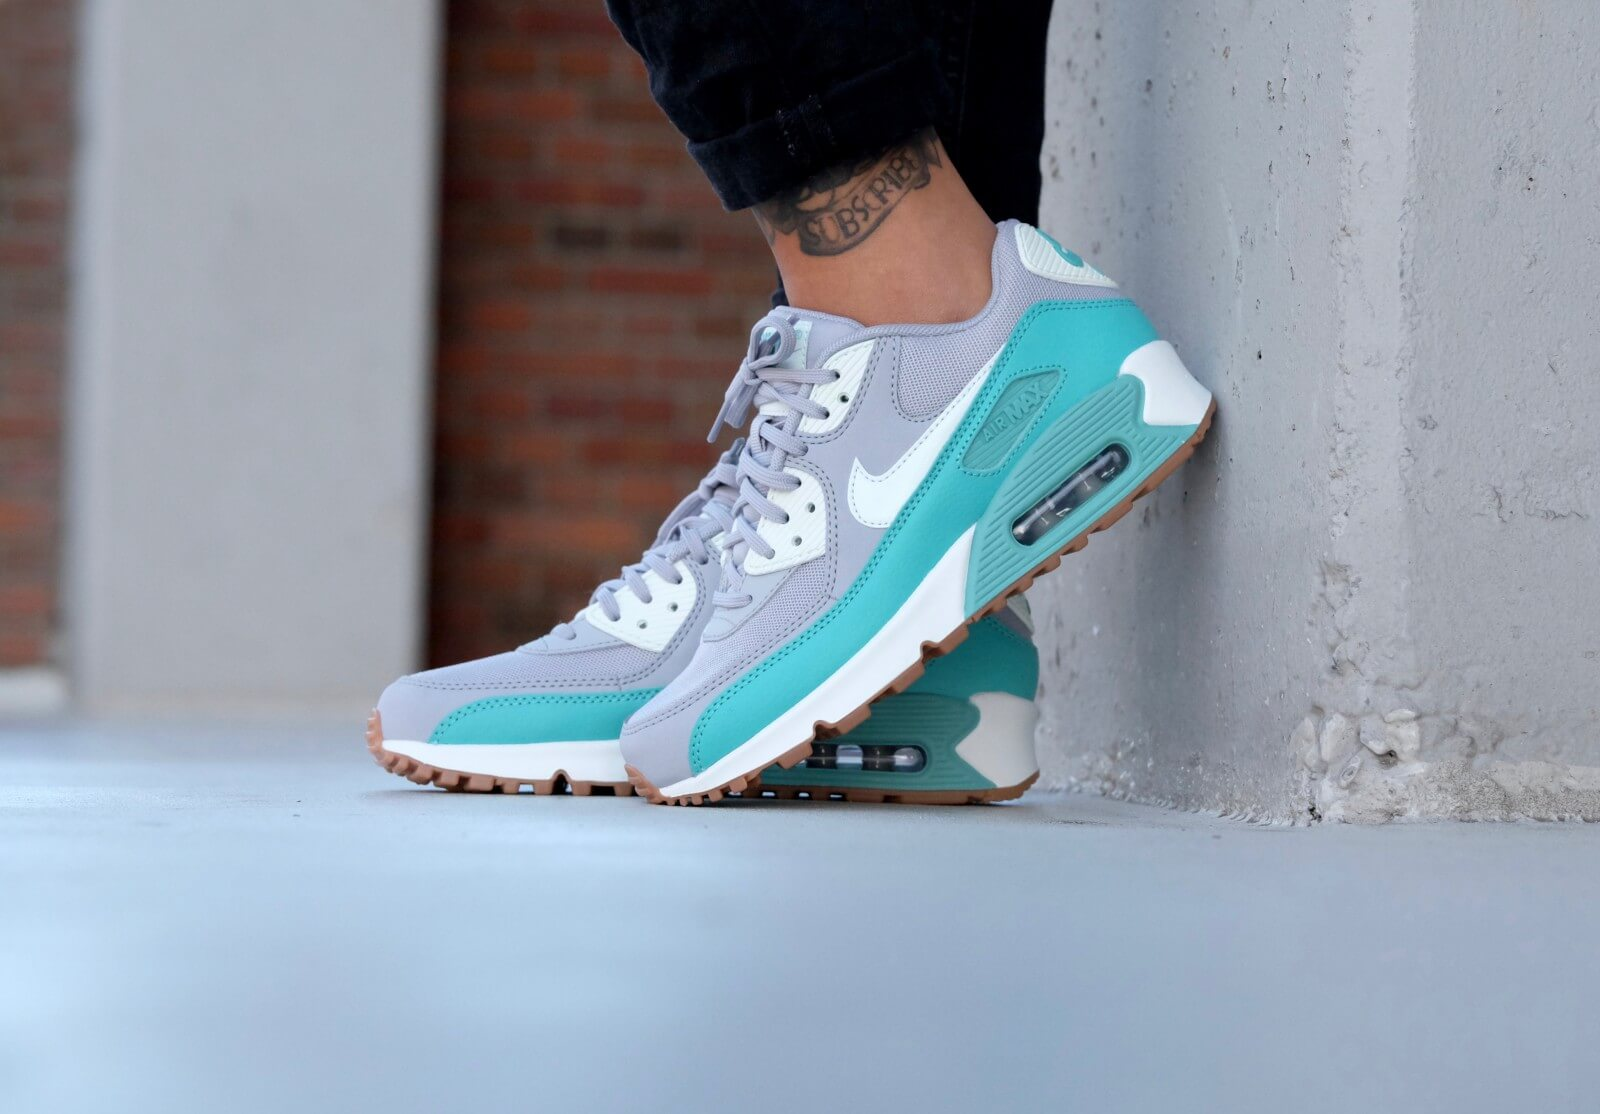 Nike WMNS Air Max 90 Essential Wolf grey Barely green Washed Teal 616730 032